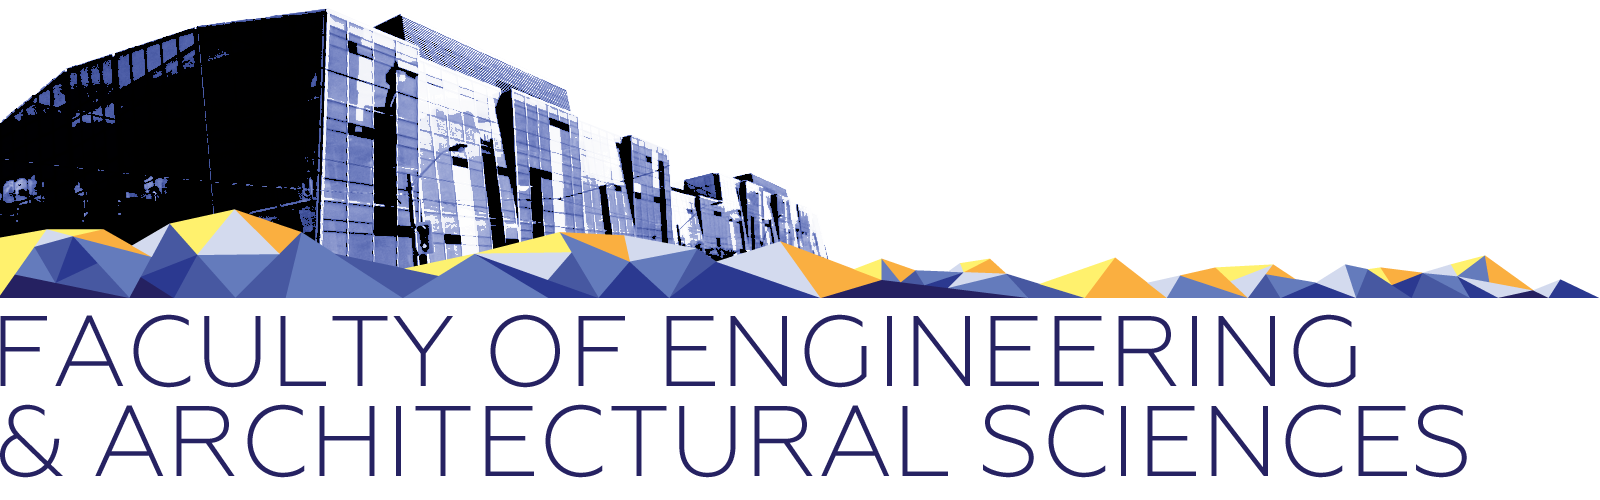 Faculty of Engineering and Architectural Sciences Banner